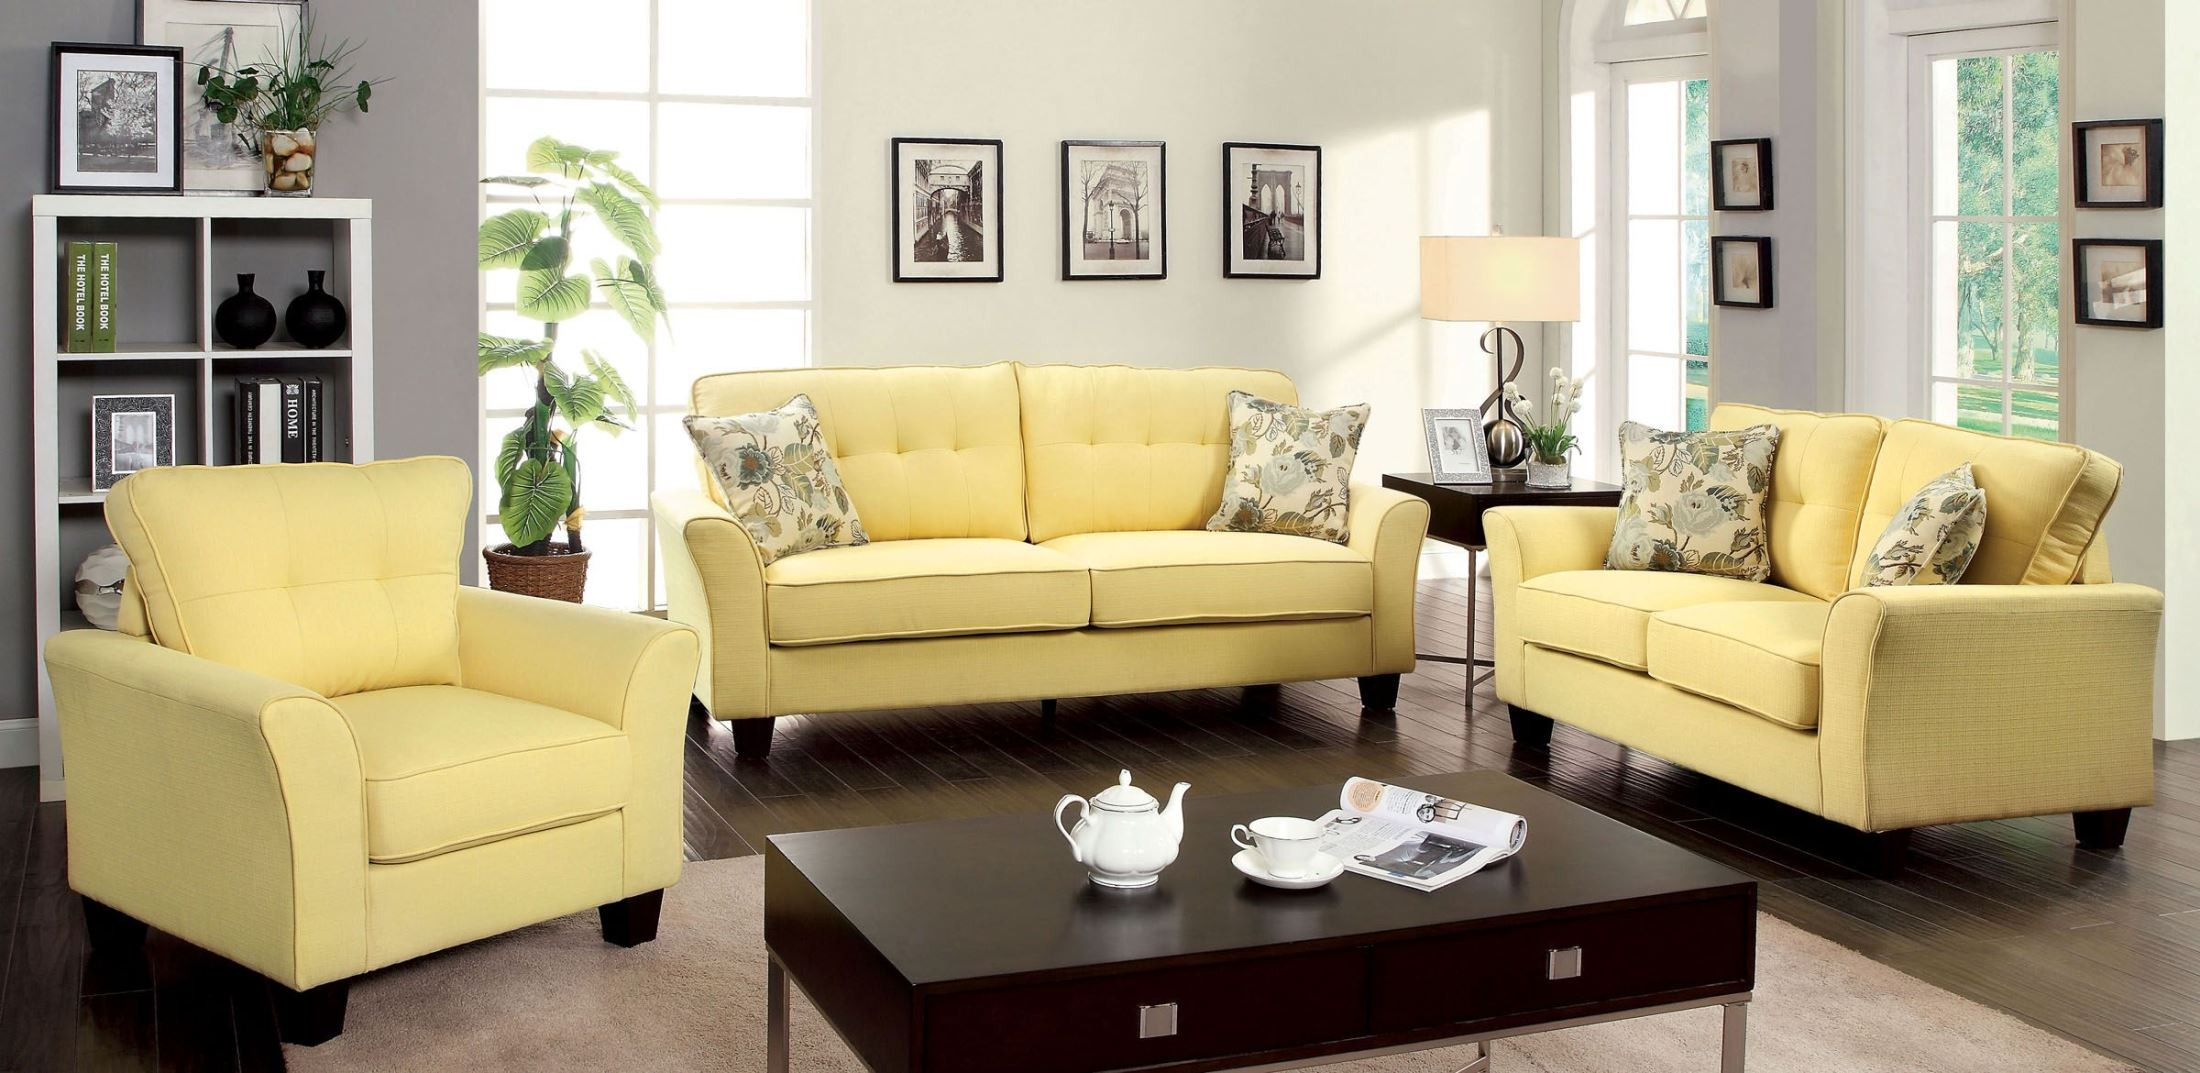 claire yellow fabric living room set from furniture of america cm6266yw sf coleman furniture. Black Bedroom Furniture Sets. Home Design Ideas